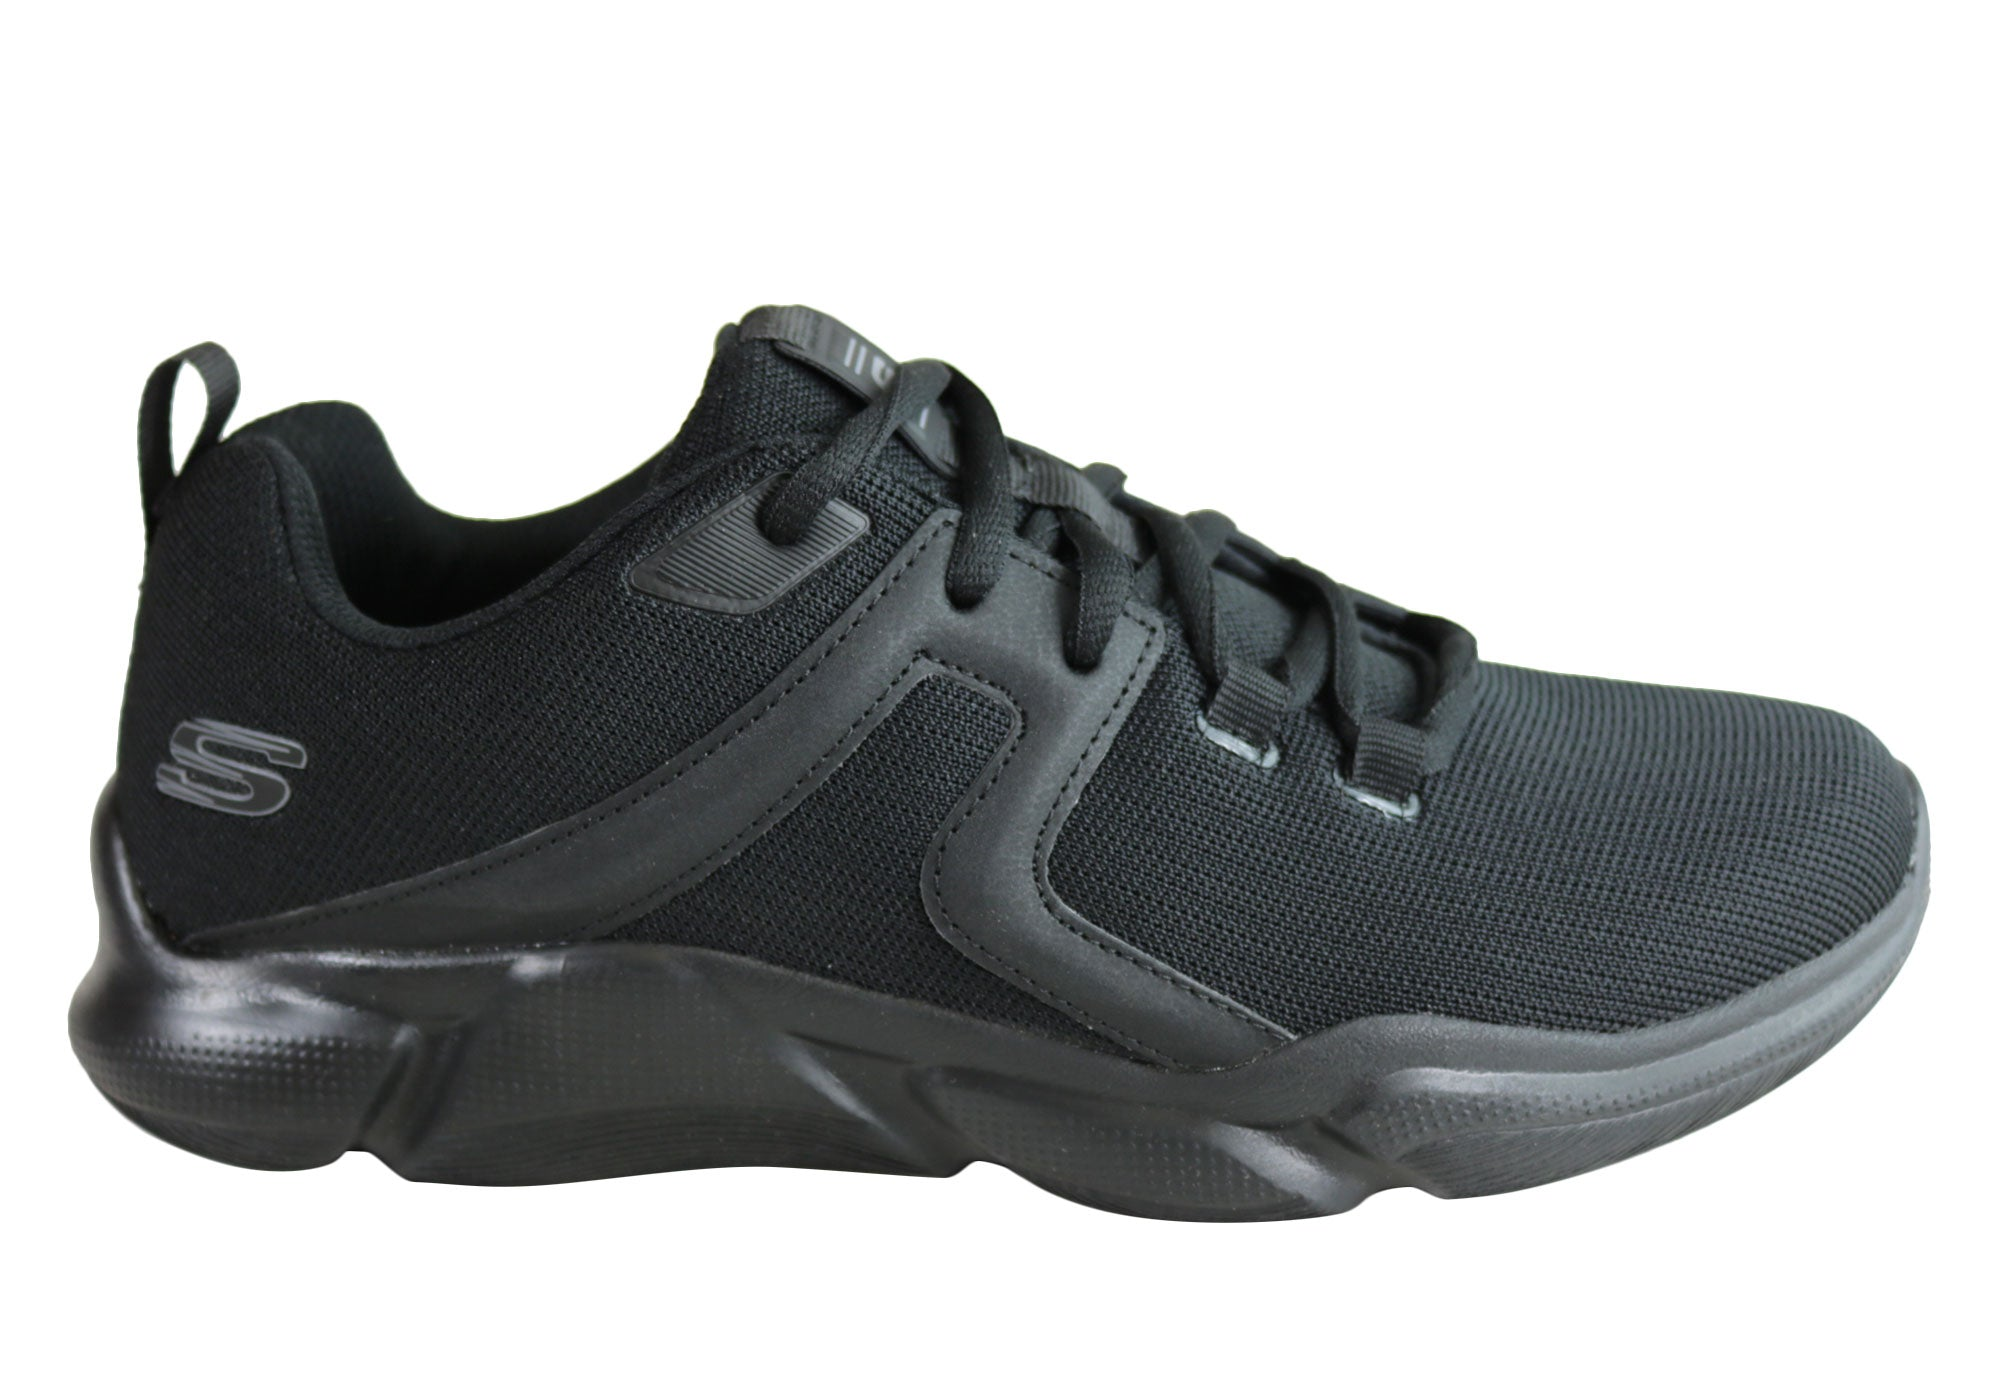 69100bc74b Skechers Mens Drafter Shible Comfortable Memory Foam Athletic Shoes ...